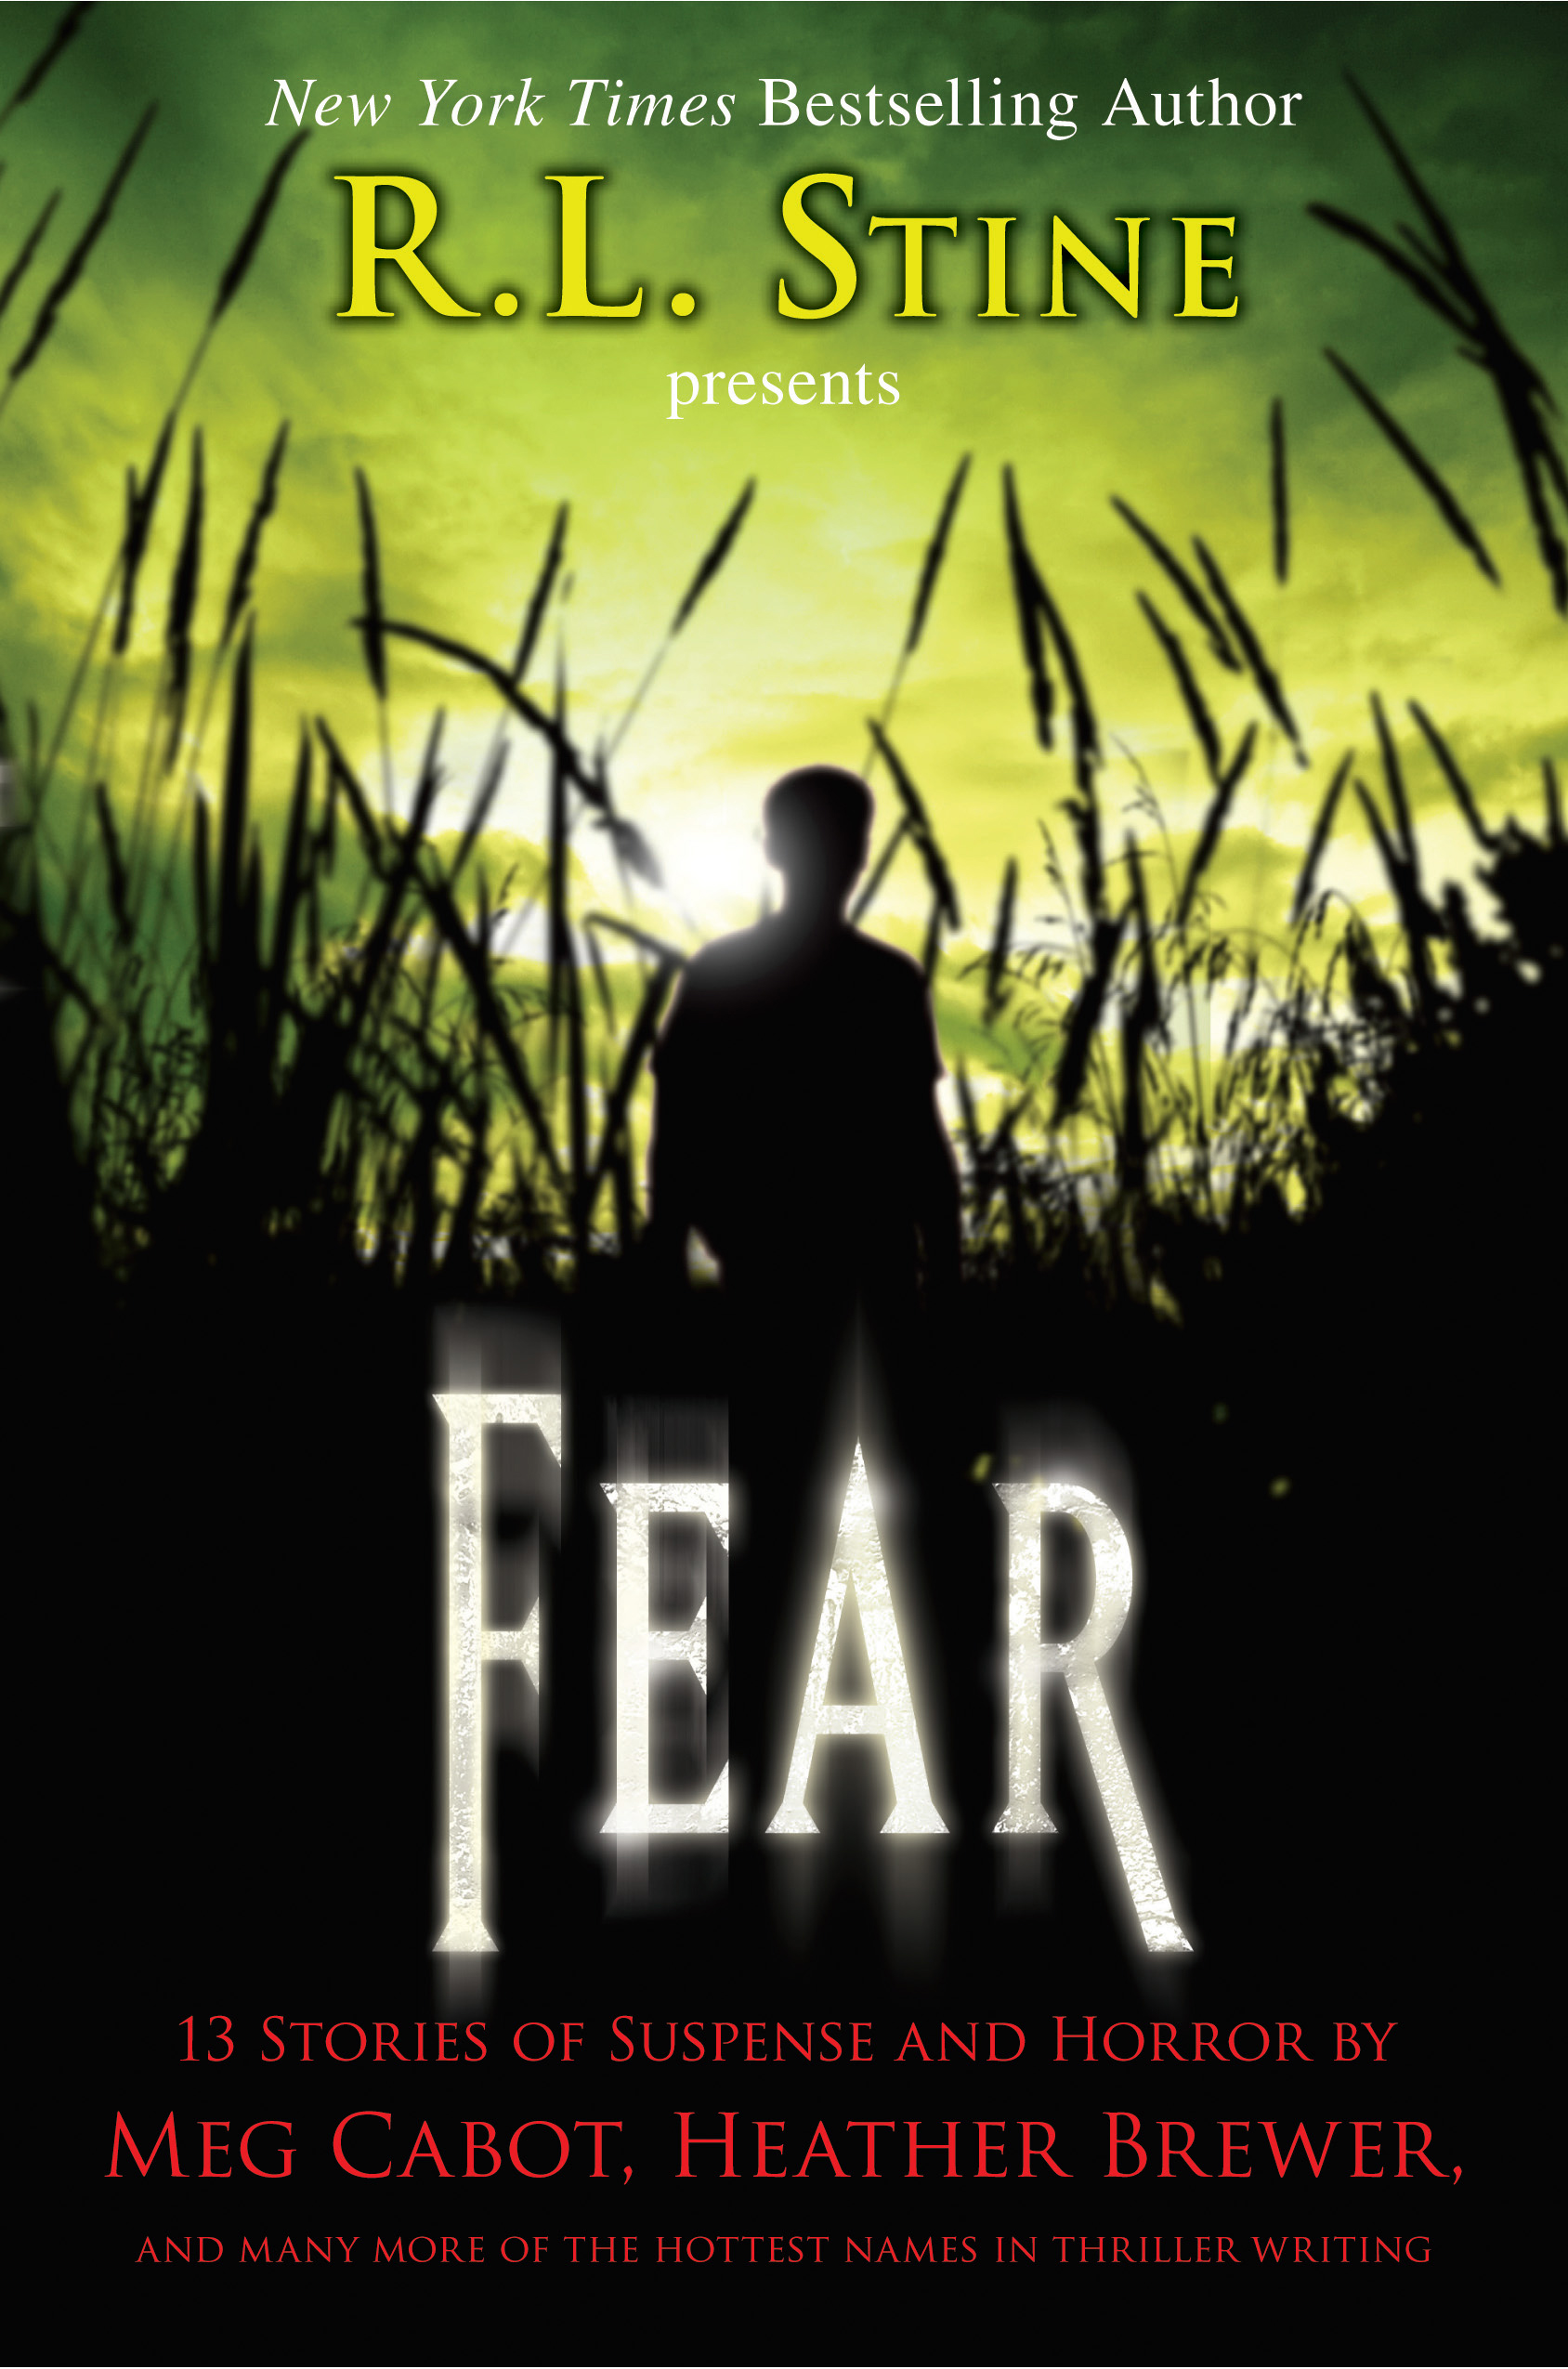 Fear: 13 Stories of Suspense and Horror: 13 Stories of Suspense and Horror By: International Thrillr eWriters Assoc.